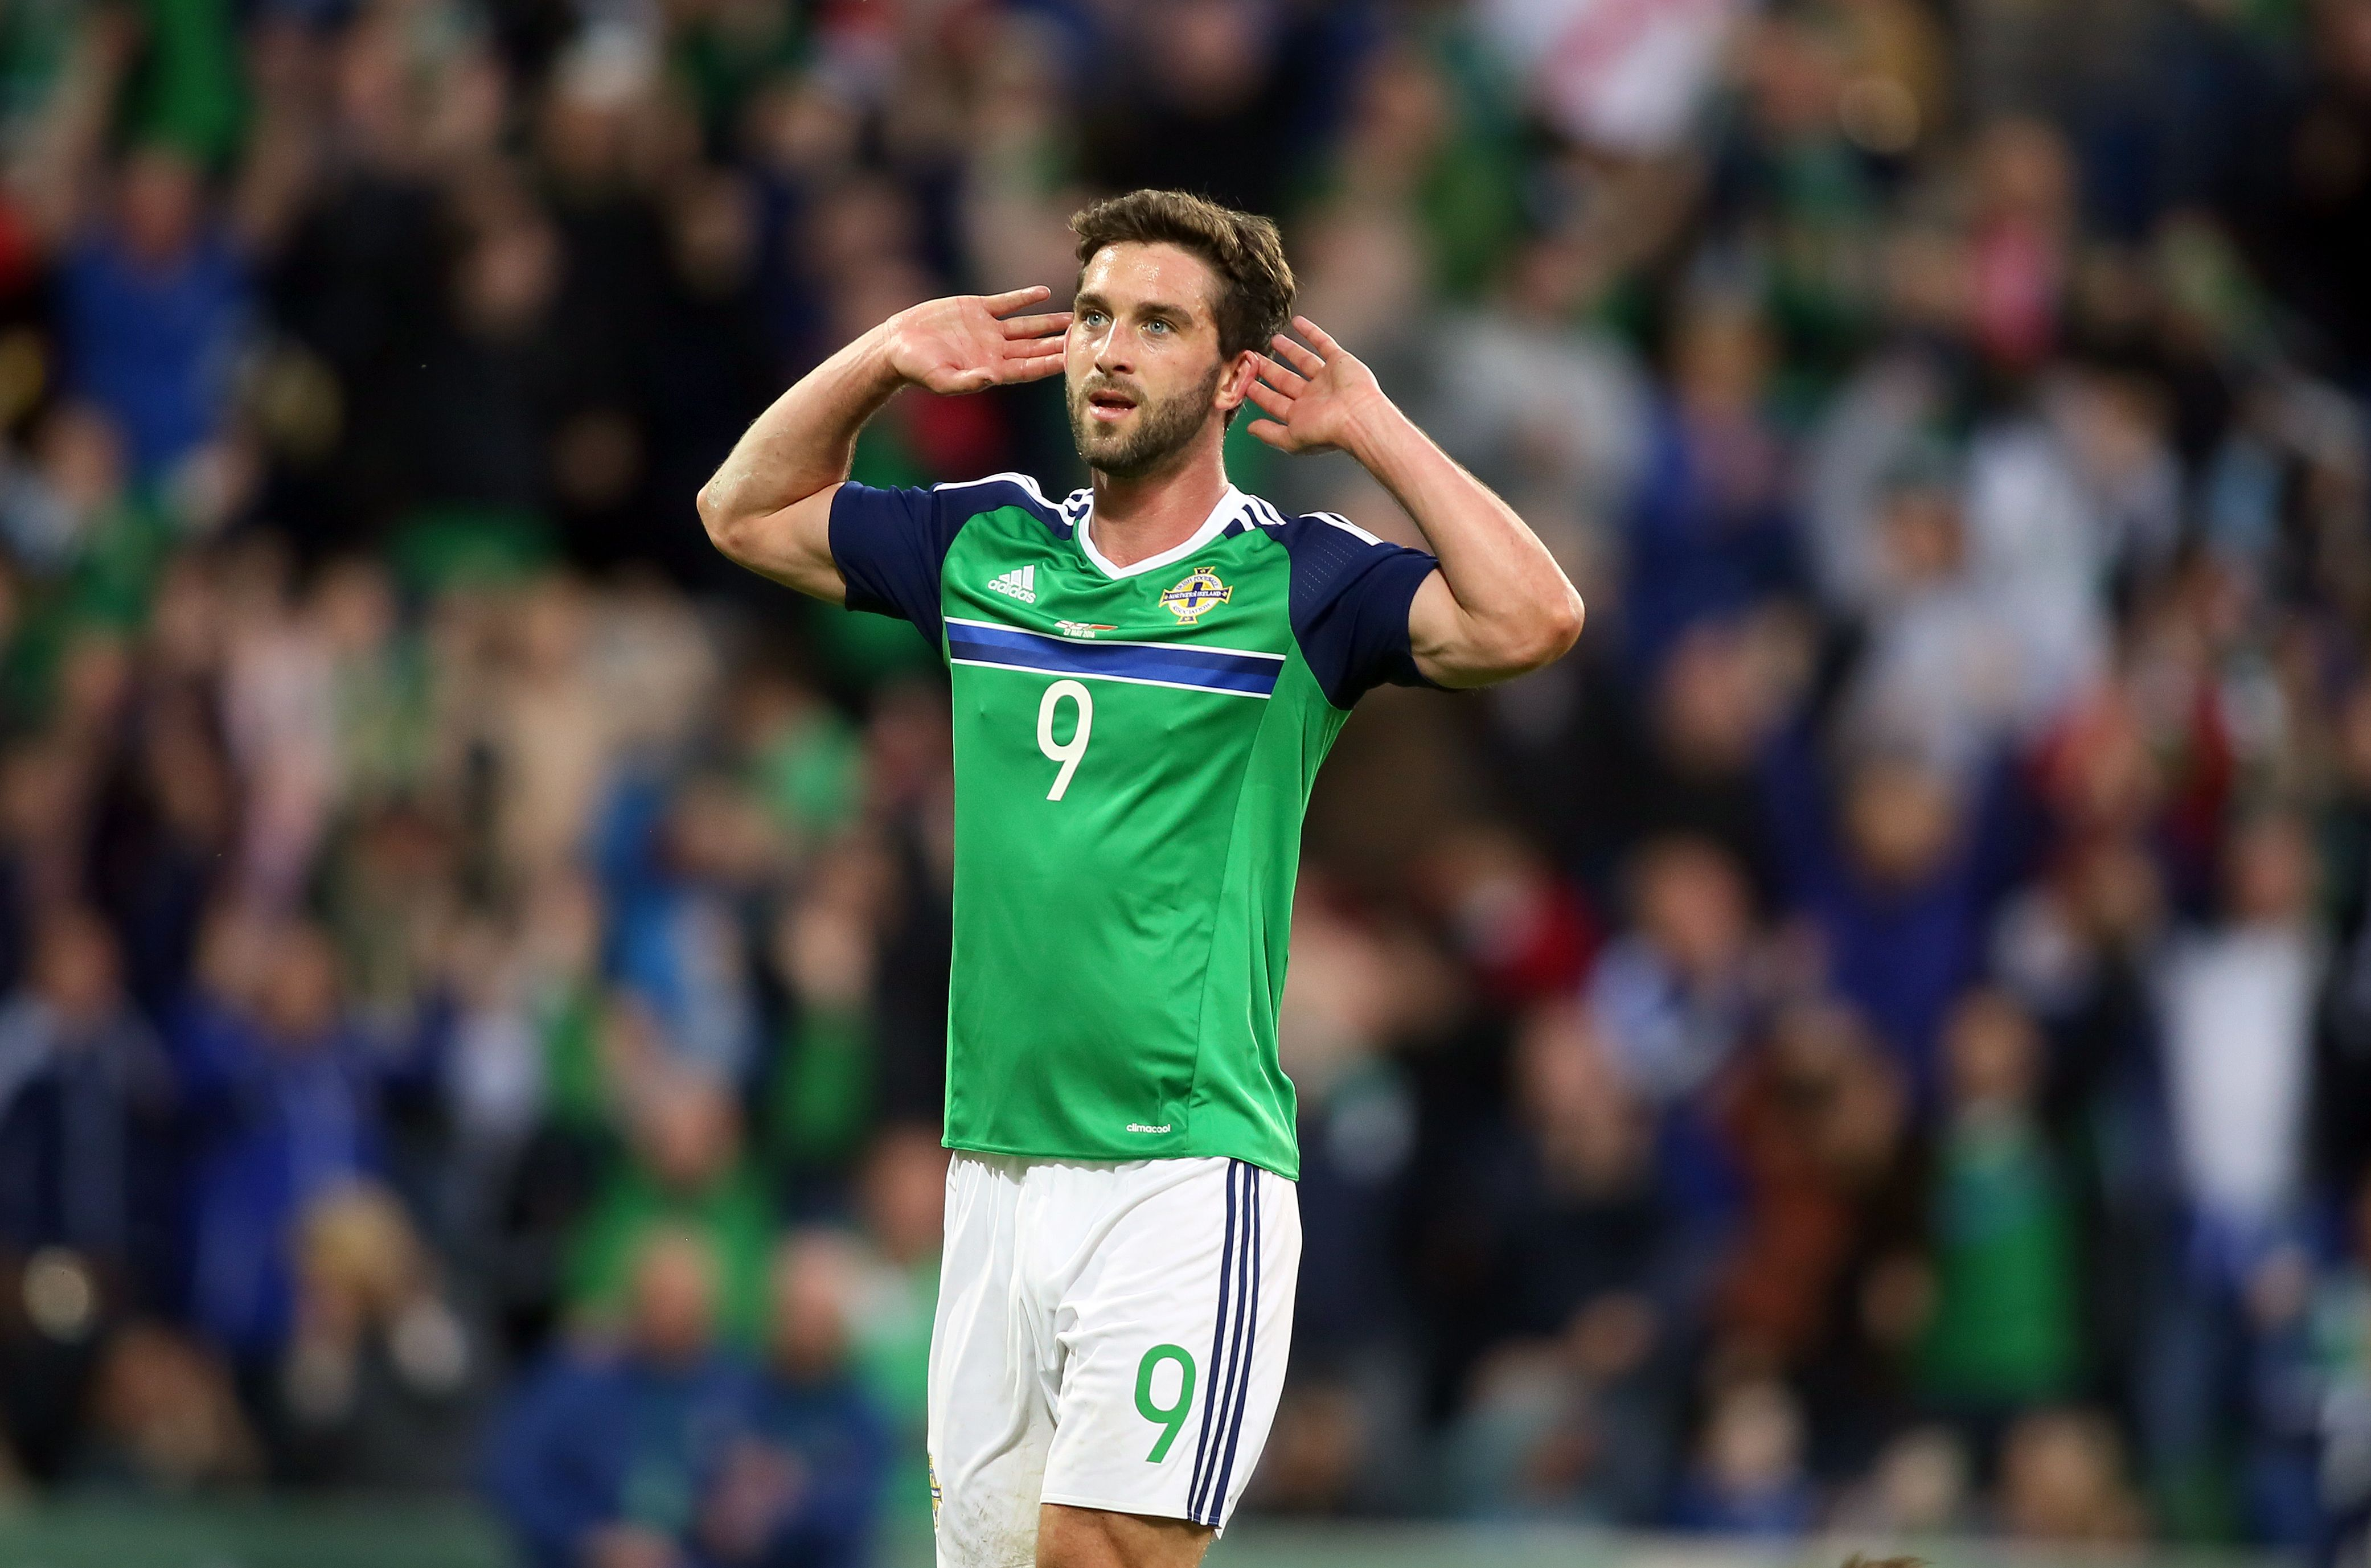 Northern Ireland's Will Grigg celebrates after scoring the team's third goal against Belarus during an international friendly football match between Northern Ireland and Belarus at Windsor Park in Belfast, Northern Ireland, on May 27, 2016. / AFP / PAUL FAITH        (Photo credit should read PAUL FAITH/AFP/Getty Images)